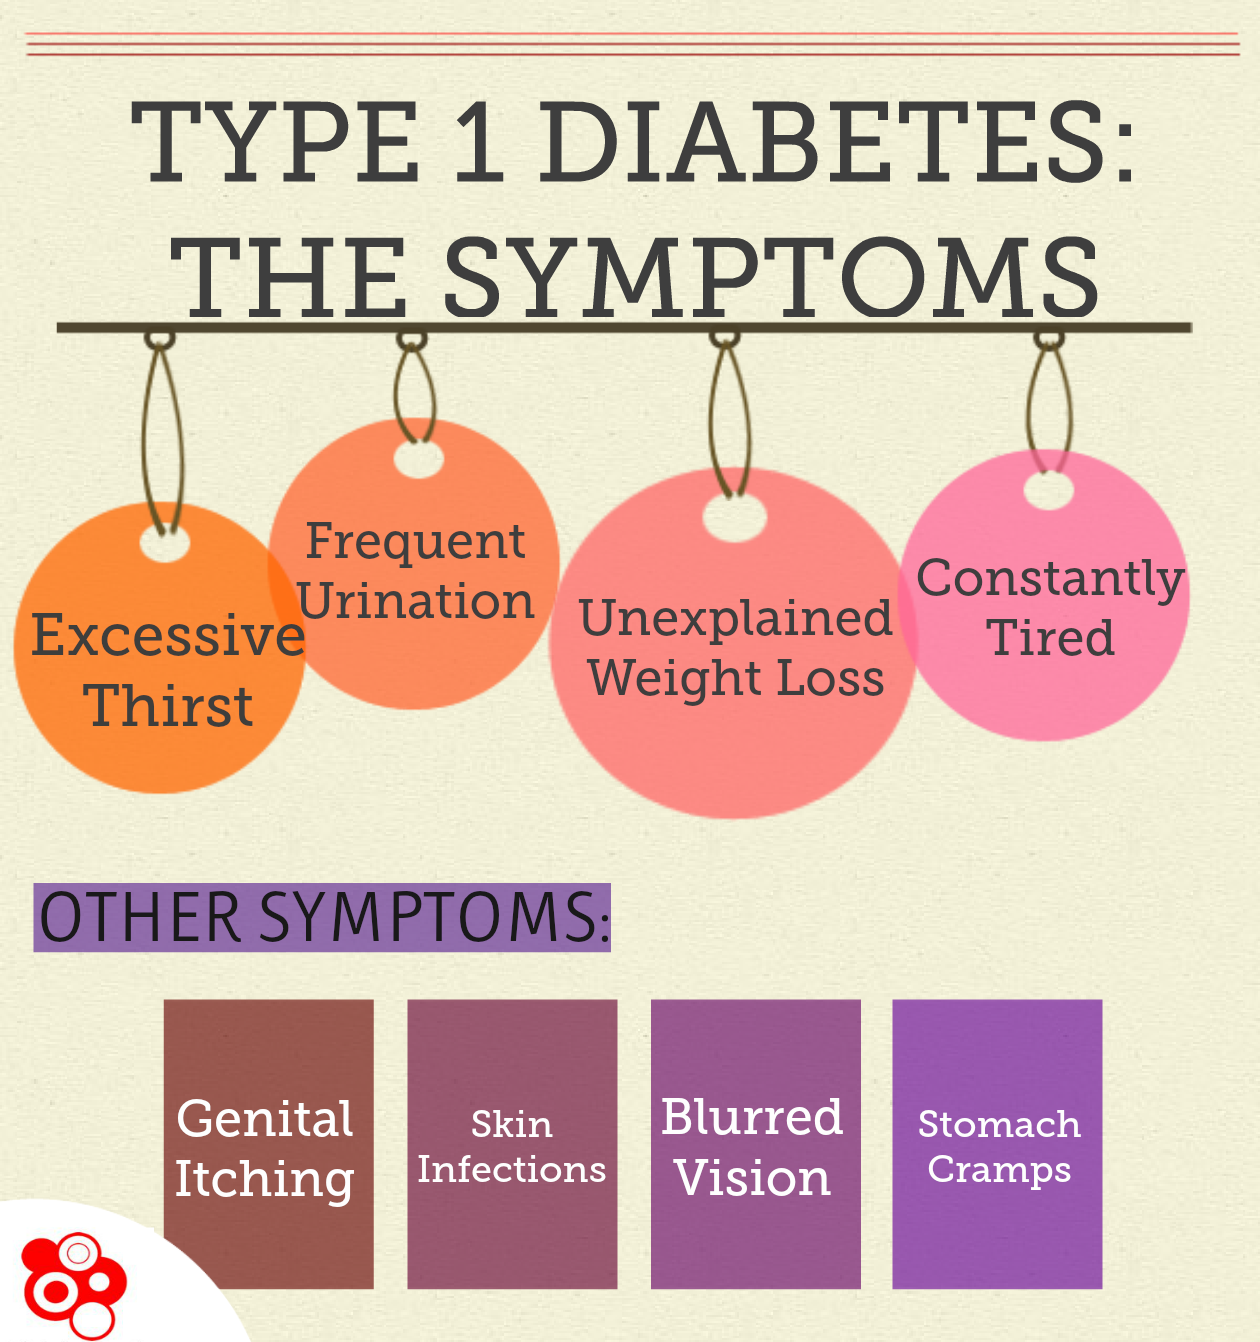 type 1diabetes Type 1 diabetes is usually diagnosed in children and young adults, and was previously known as juvenile diabetes with type 1 diabetes, the body attacks insulin-producing beta cells in the pancreas and destroys them.